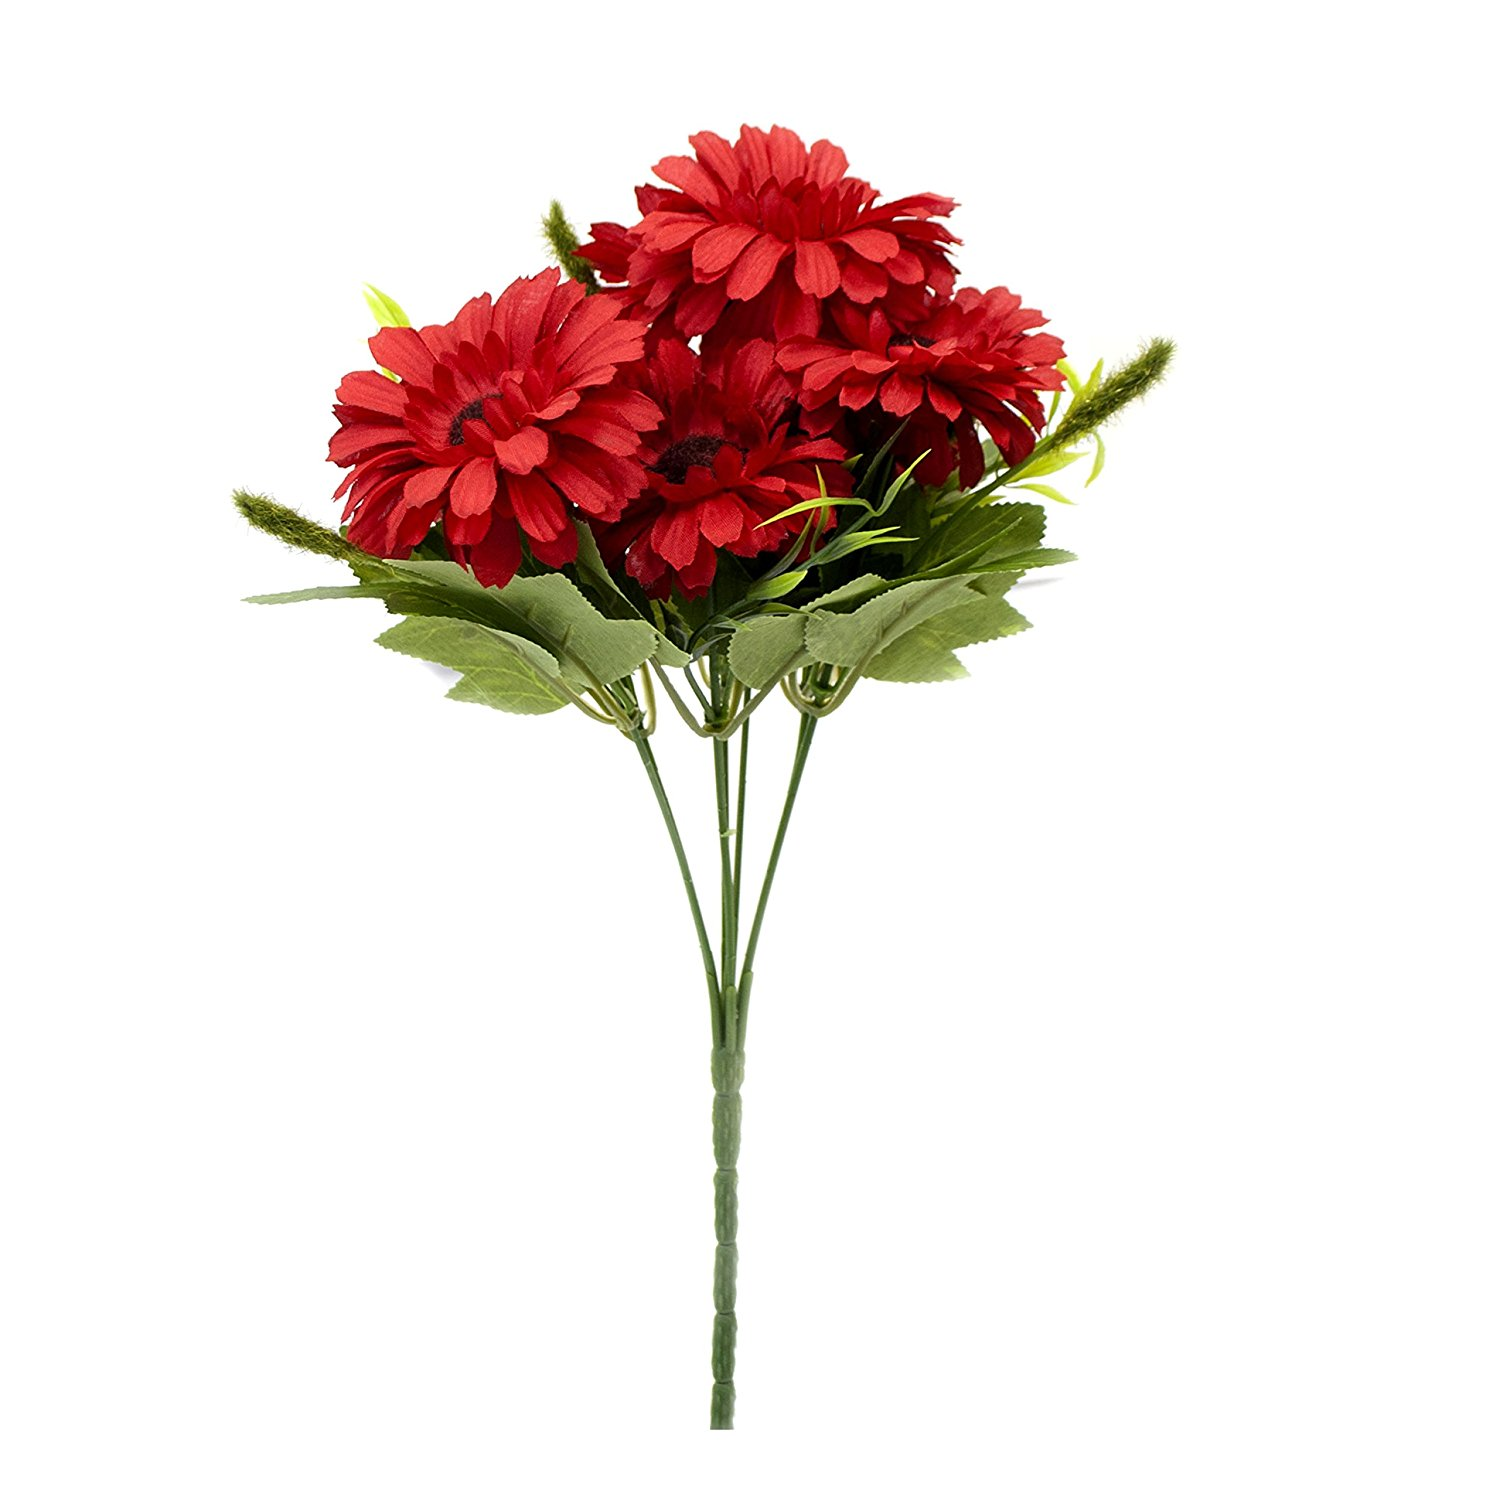 Artificial 11 Inches Long 7 Heads Silk Flower Gerberas Bouquet, Red Color